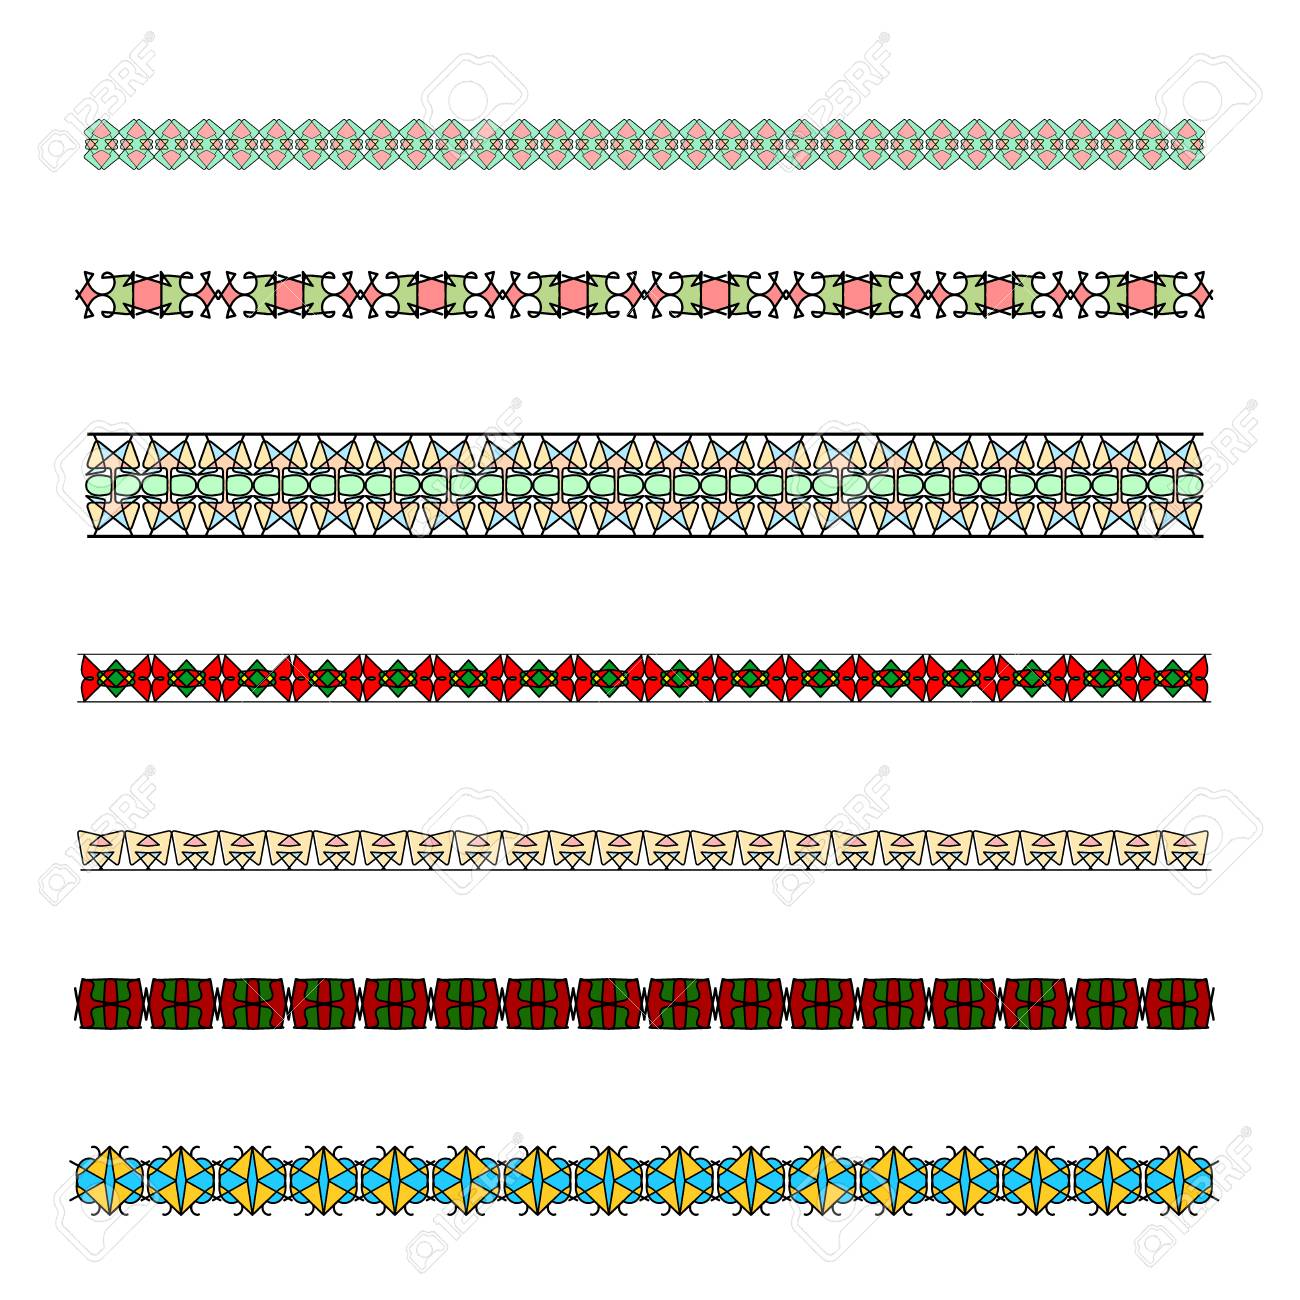 Colored Borders Patterned Strip For Design Patterned Decorative